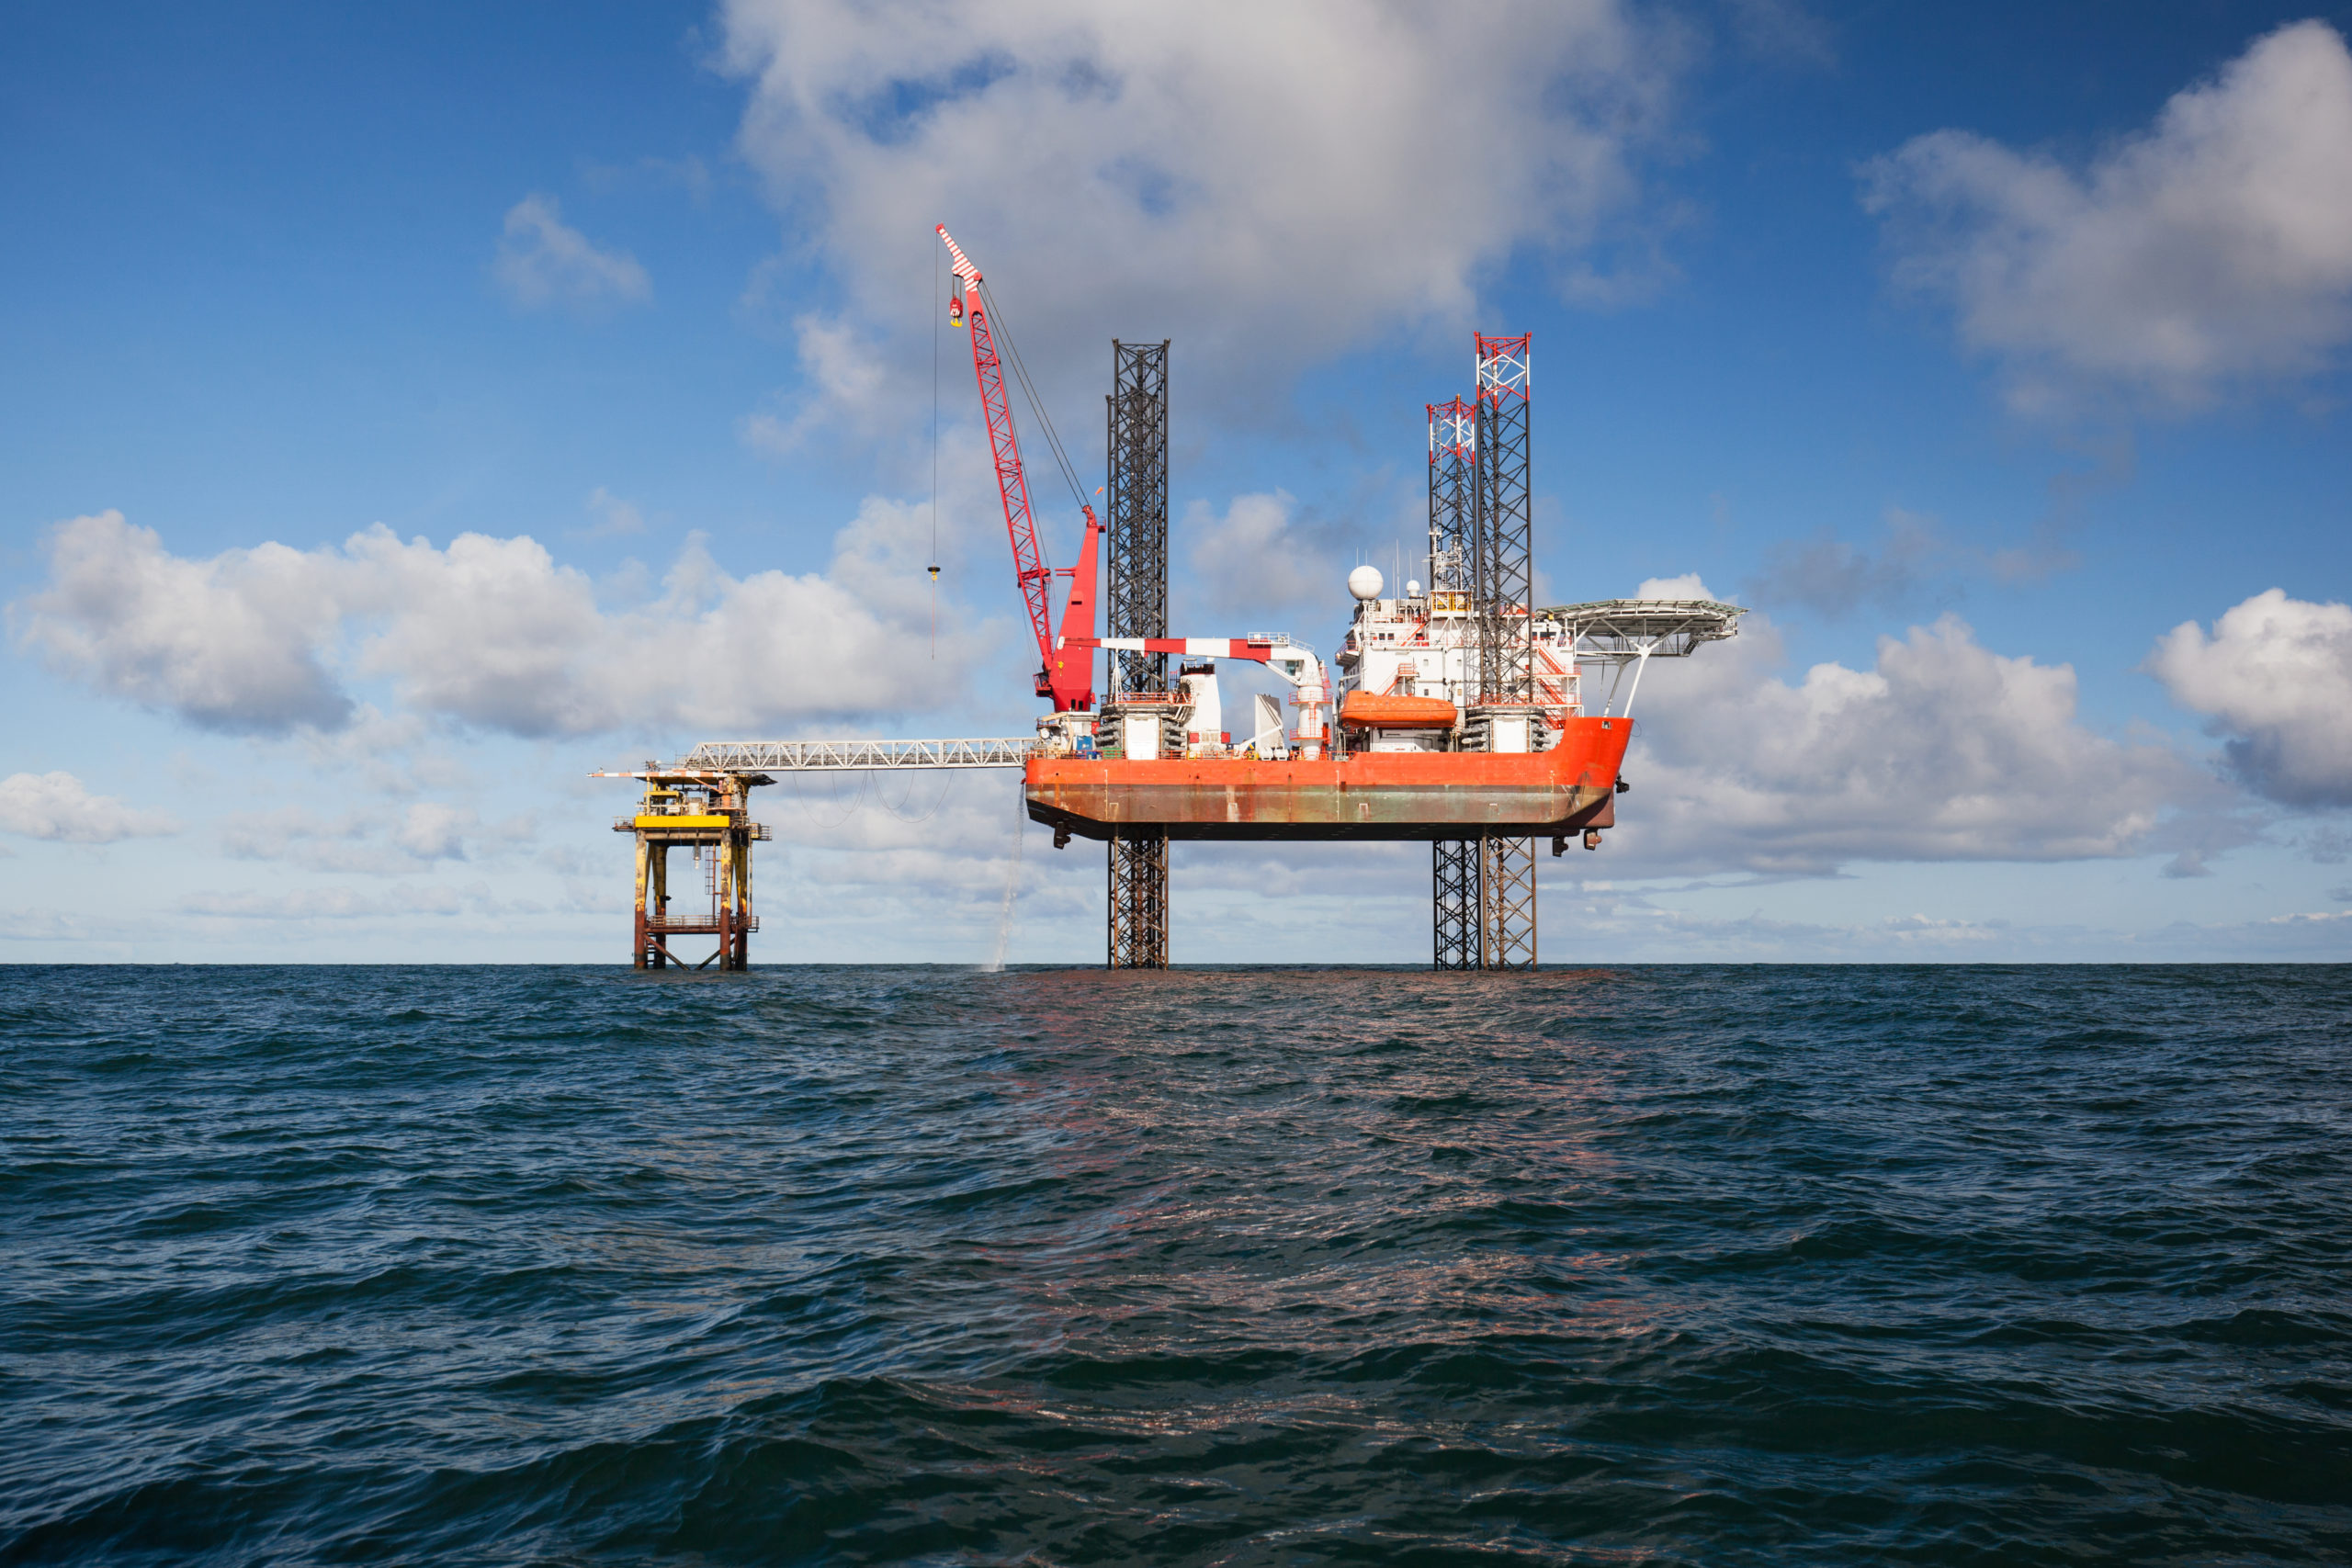 Oil,Platform,During,The,Day